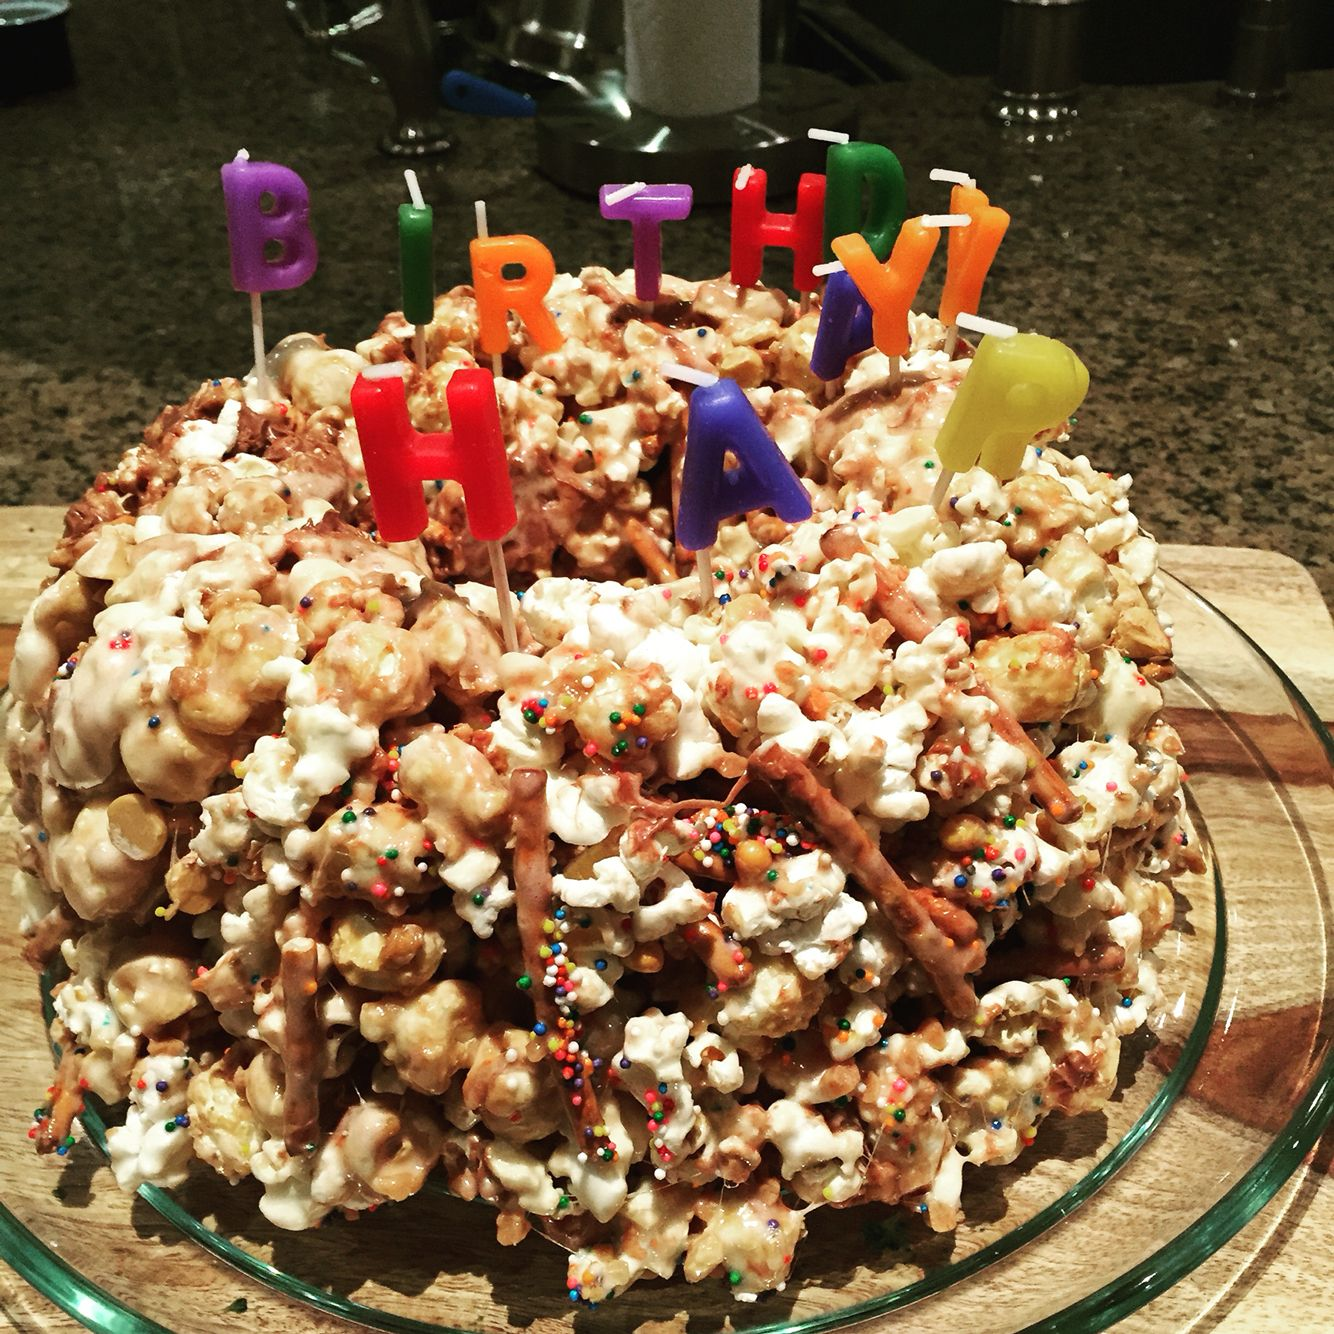 A very cool cake made with popcorn, pretzels, marshmallows, butterscotch chipits and sparkles. I am so proud of Benj